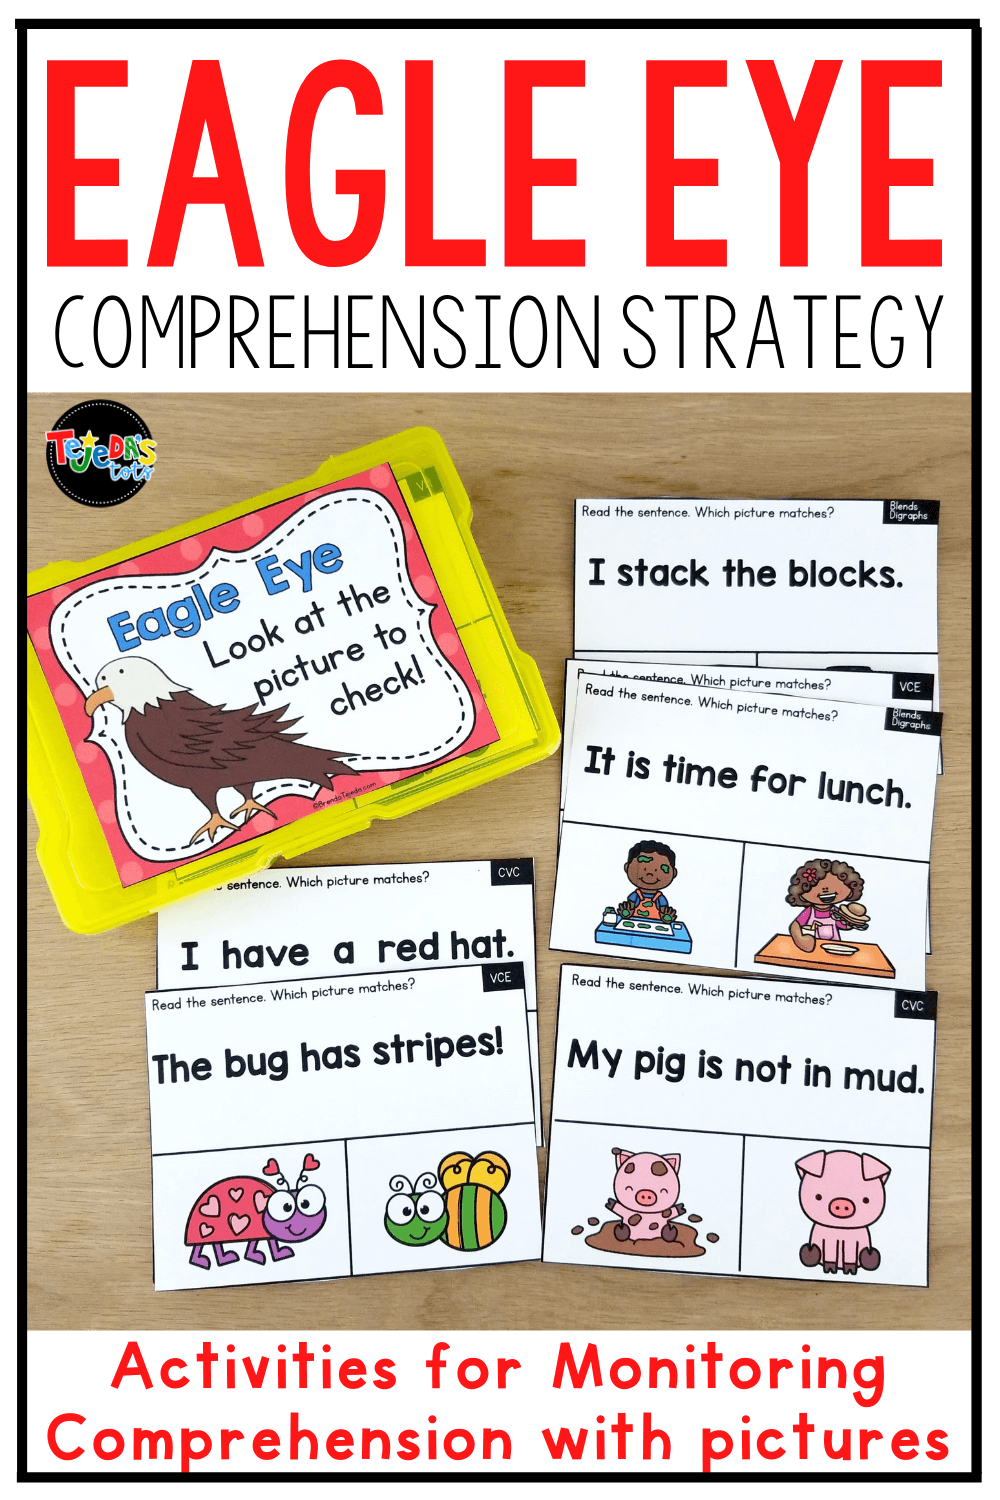 Eagle Eye is an important comprehension strategy for beginning readers. After decoding the text, kindergarten and first-grade students are encouraged to look at the picture to confirm their reading. Read tips on using this strategy, as well as a look into my Eagle Eye reading strategy resource, with printable and digital activities. Includes a PowerPoint to introduce the strategy and many practice activities.